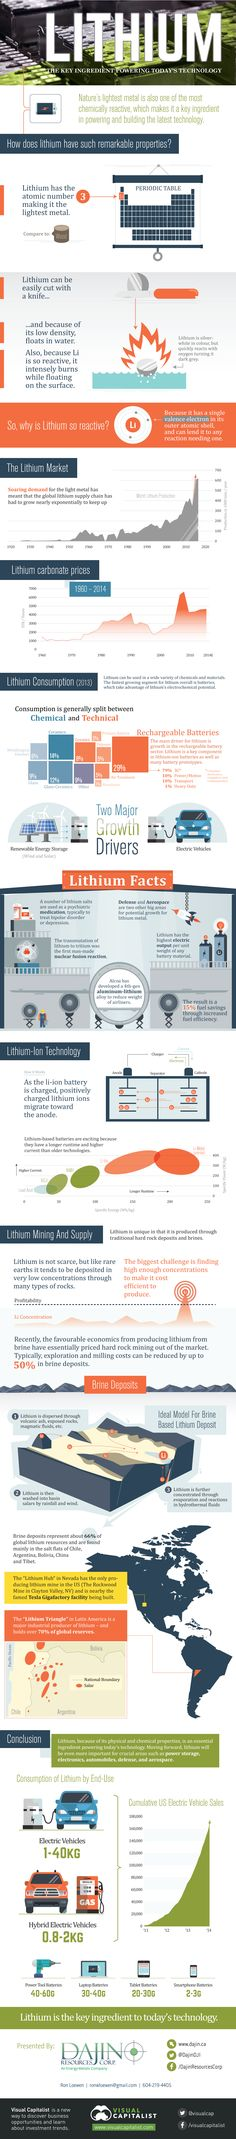 Lithium: The Key Ingredient Powering Today's Technology Infographic